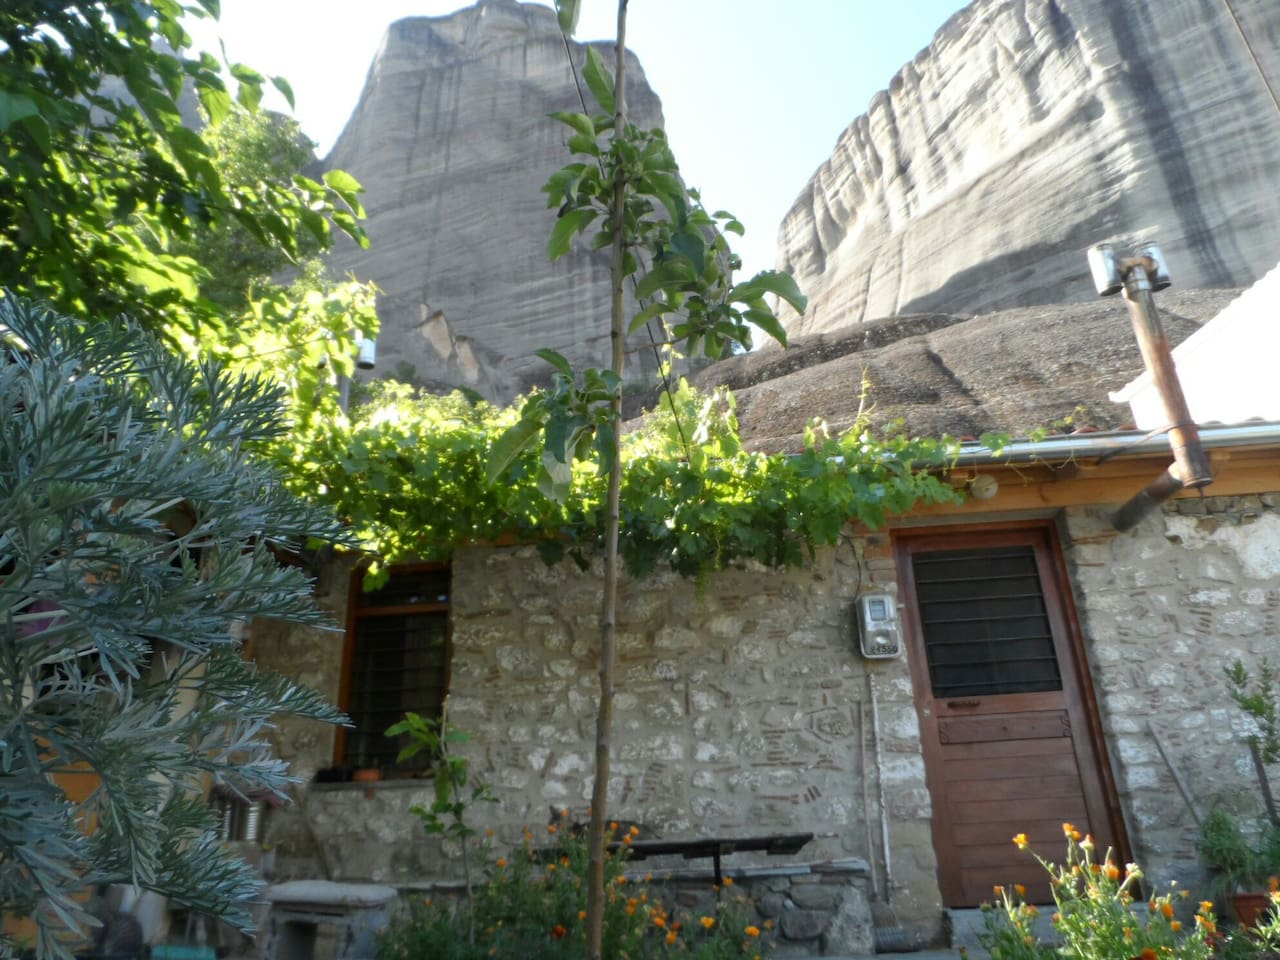 House from outside.